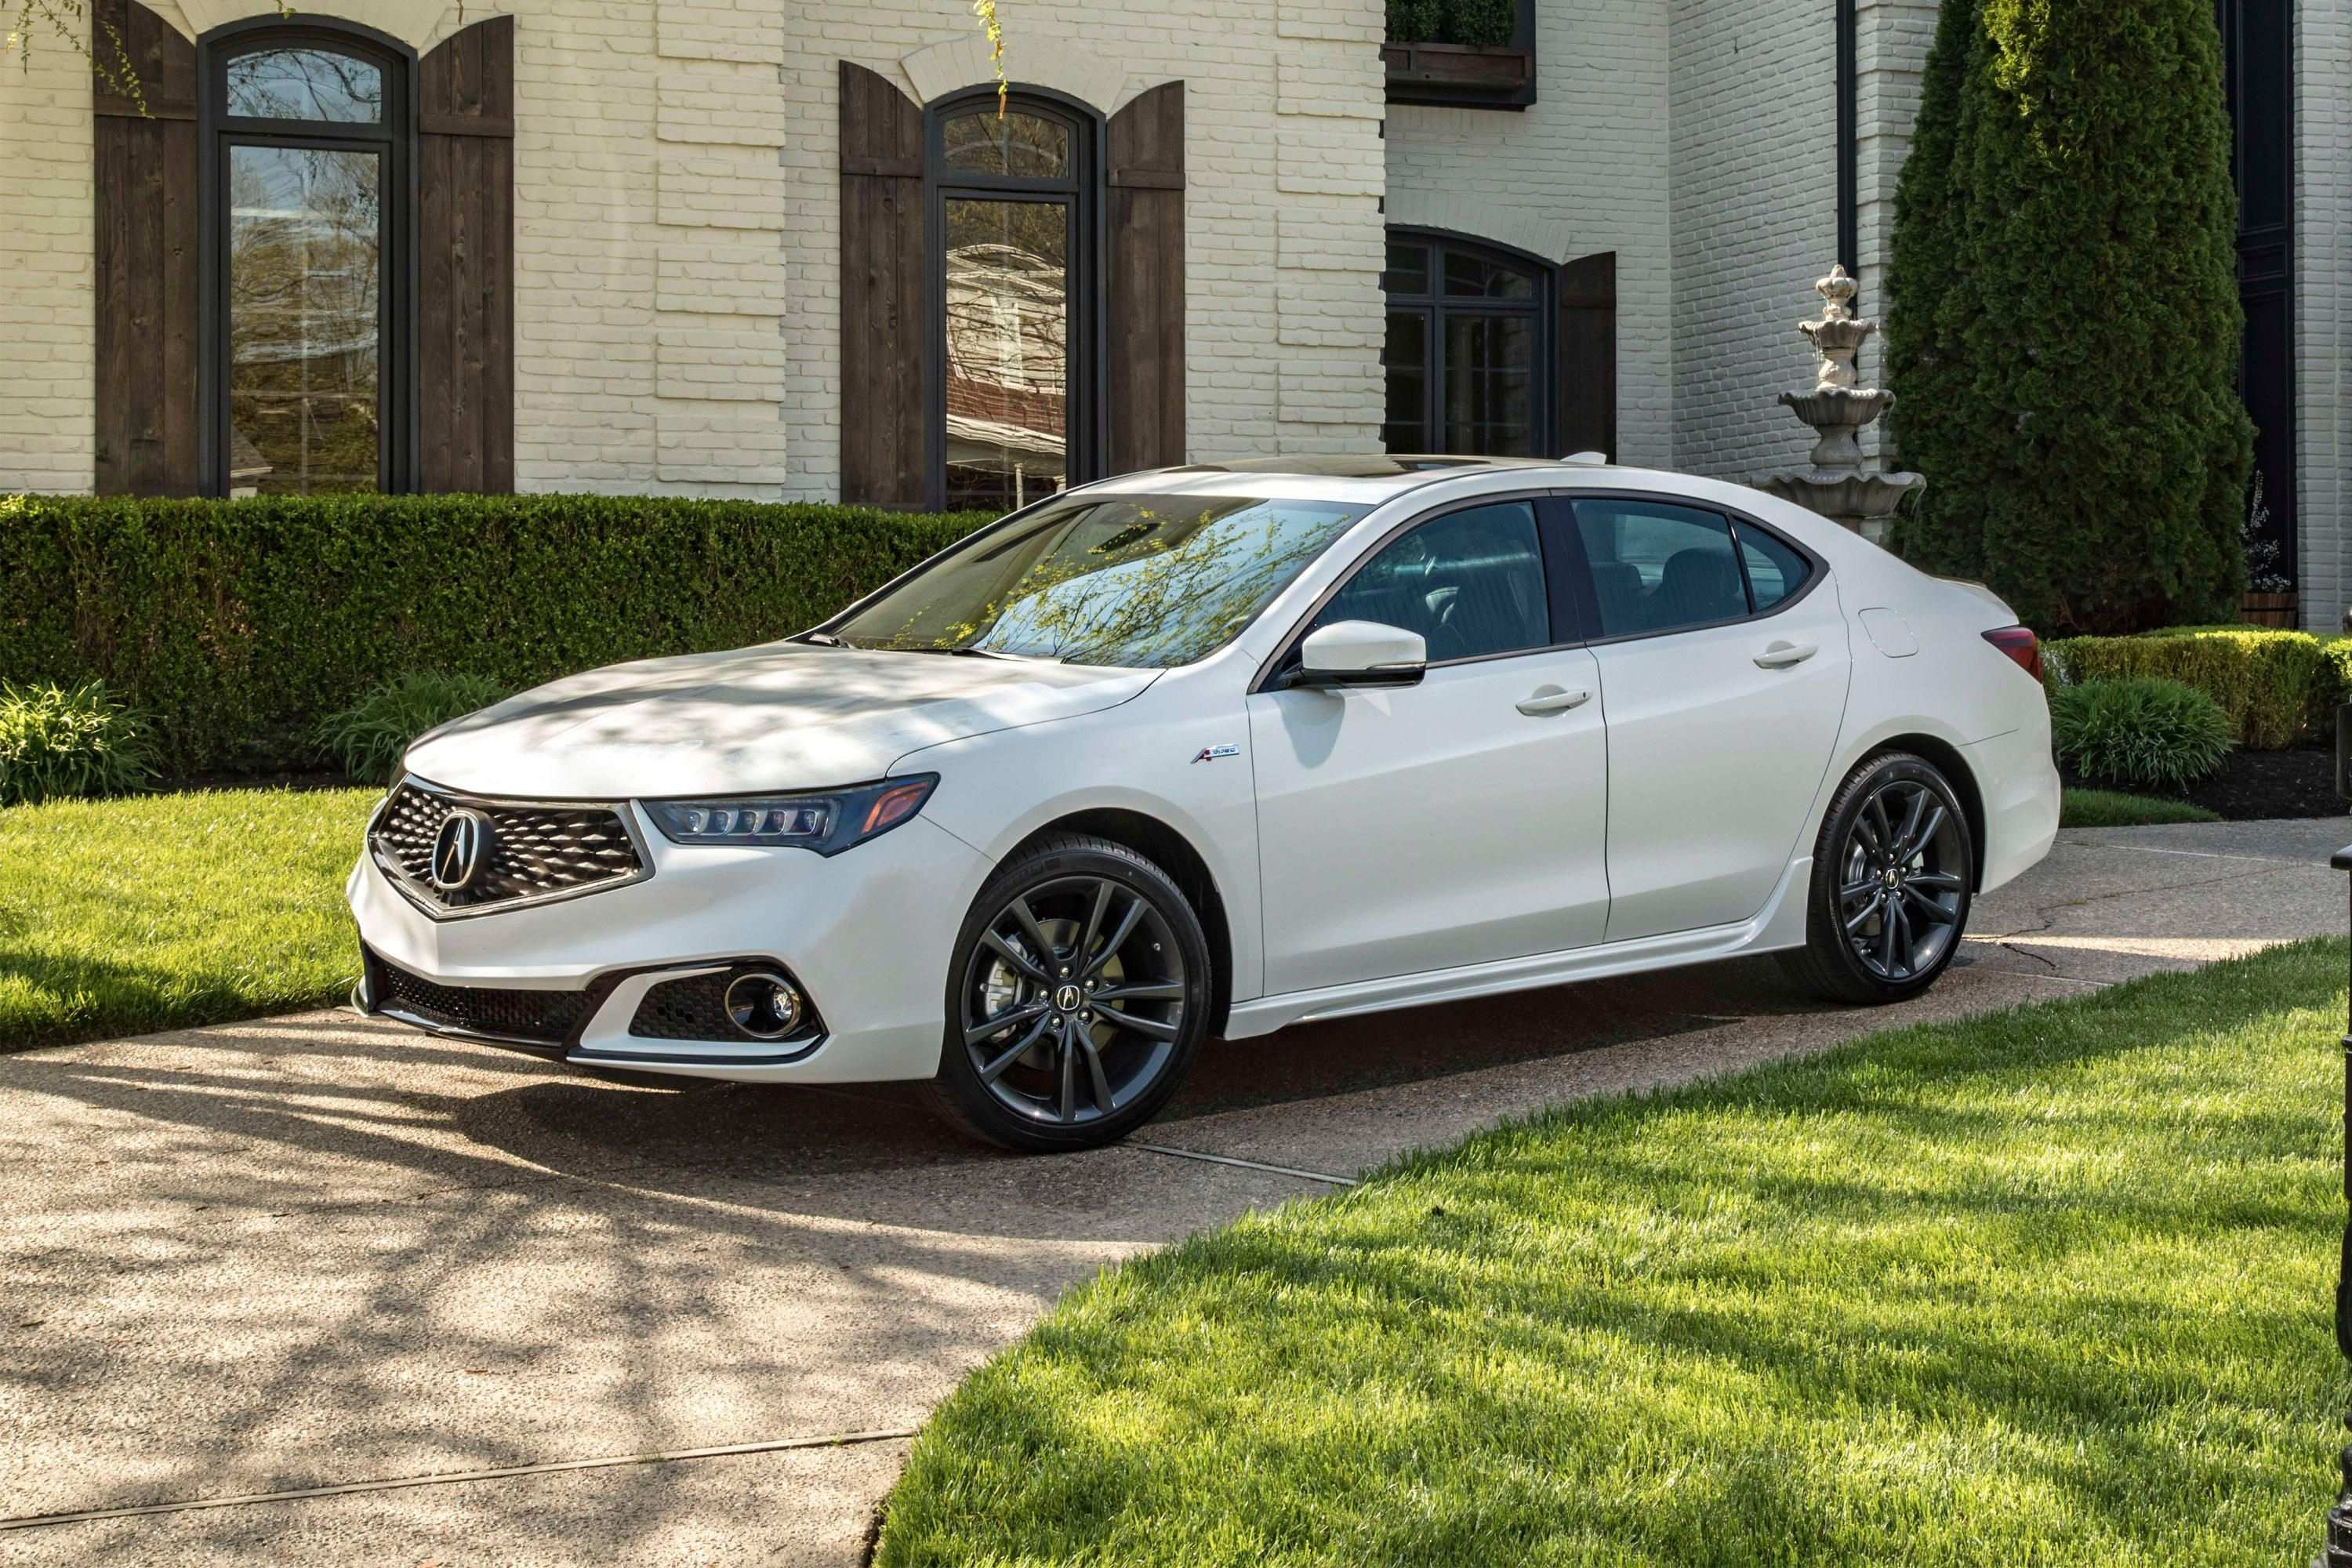 91 A 2019 Acura Specs Release Date